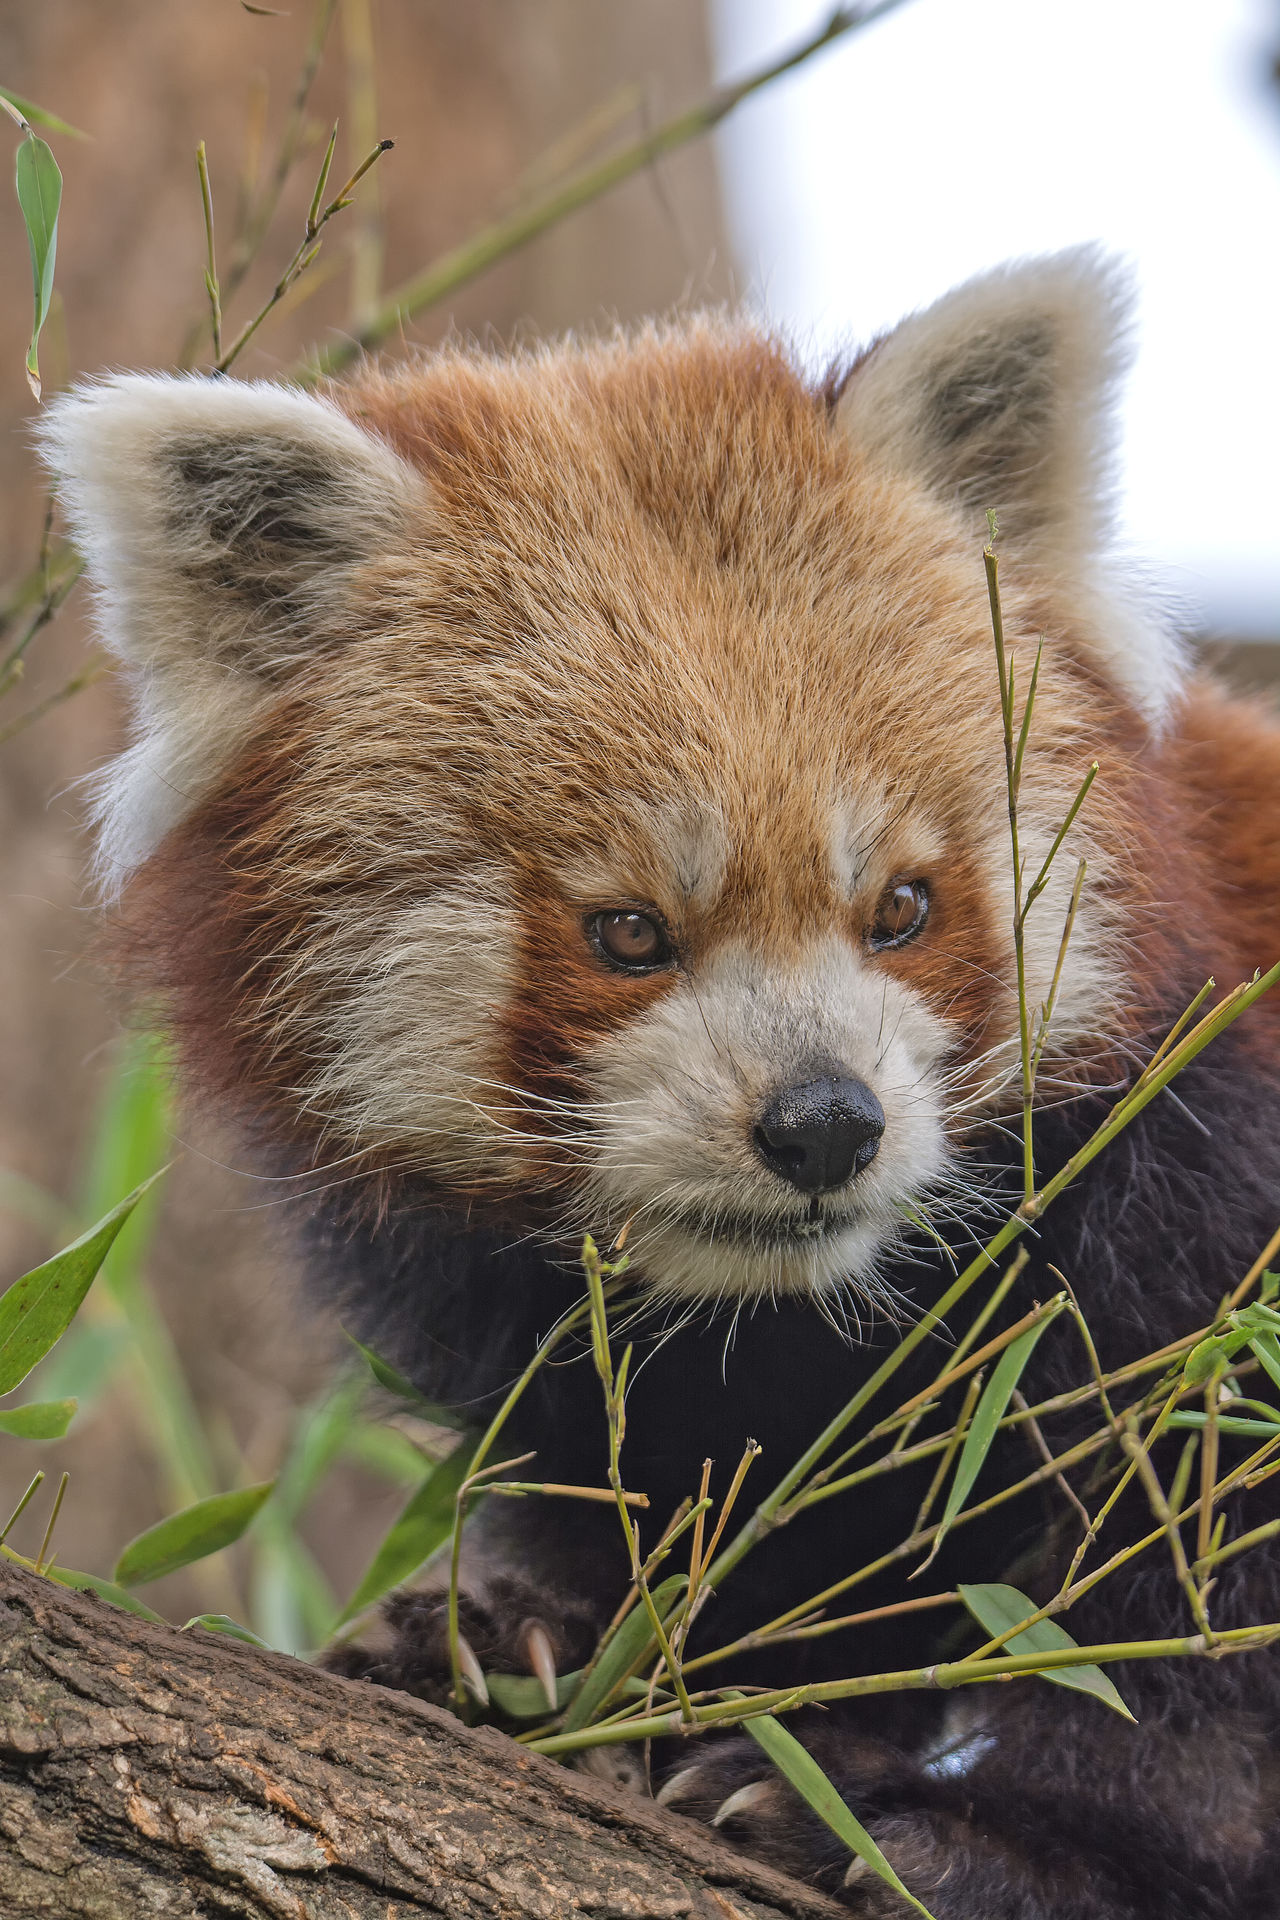 Animal Themes Animal Wildlife Animals In The Wild Close-up Day Looking At Camera Mammal Nature No People One Animal Outdoors Portrait Red Panda Tree